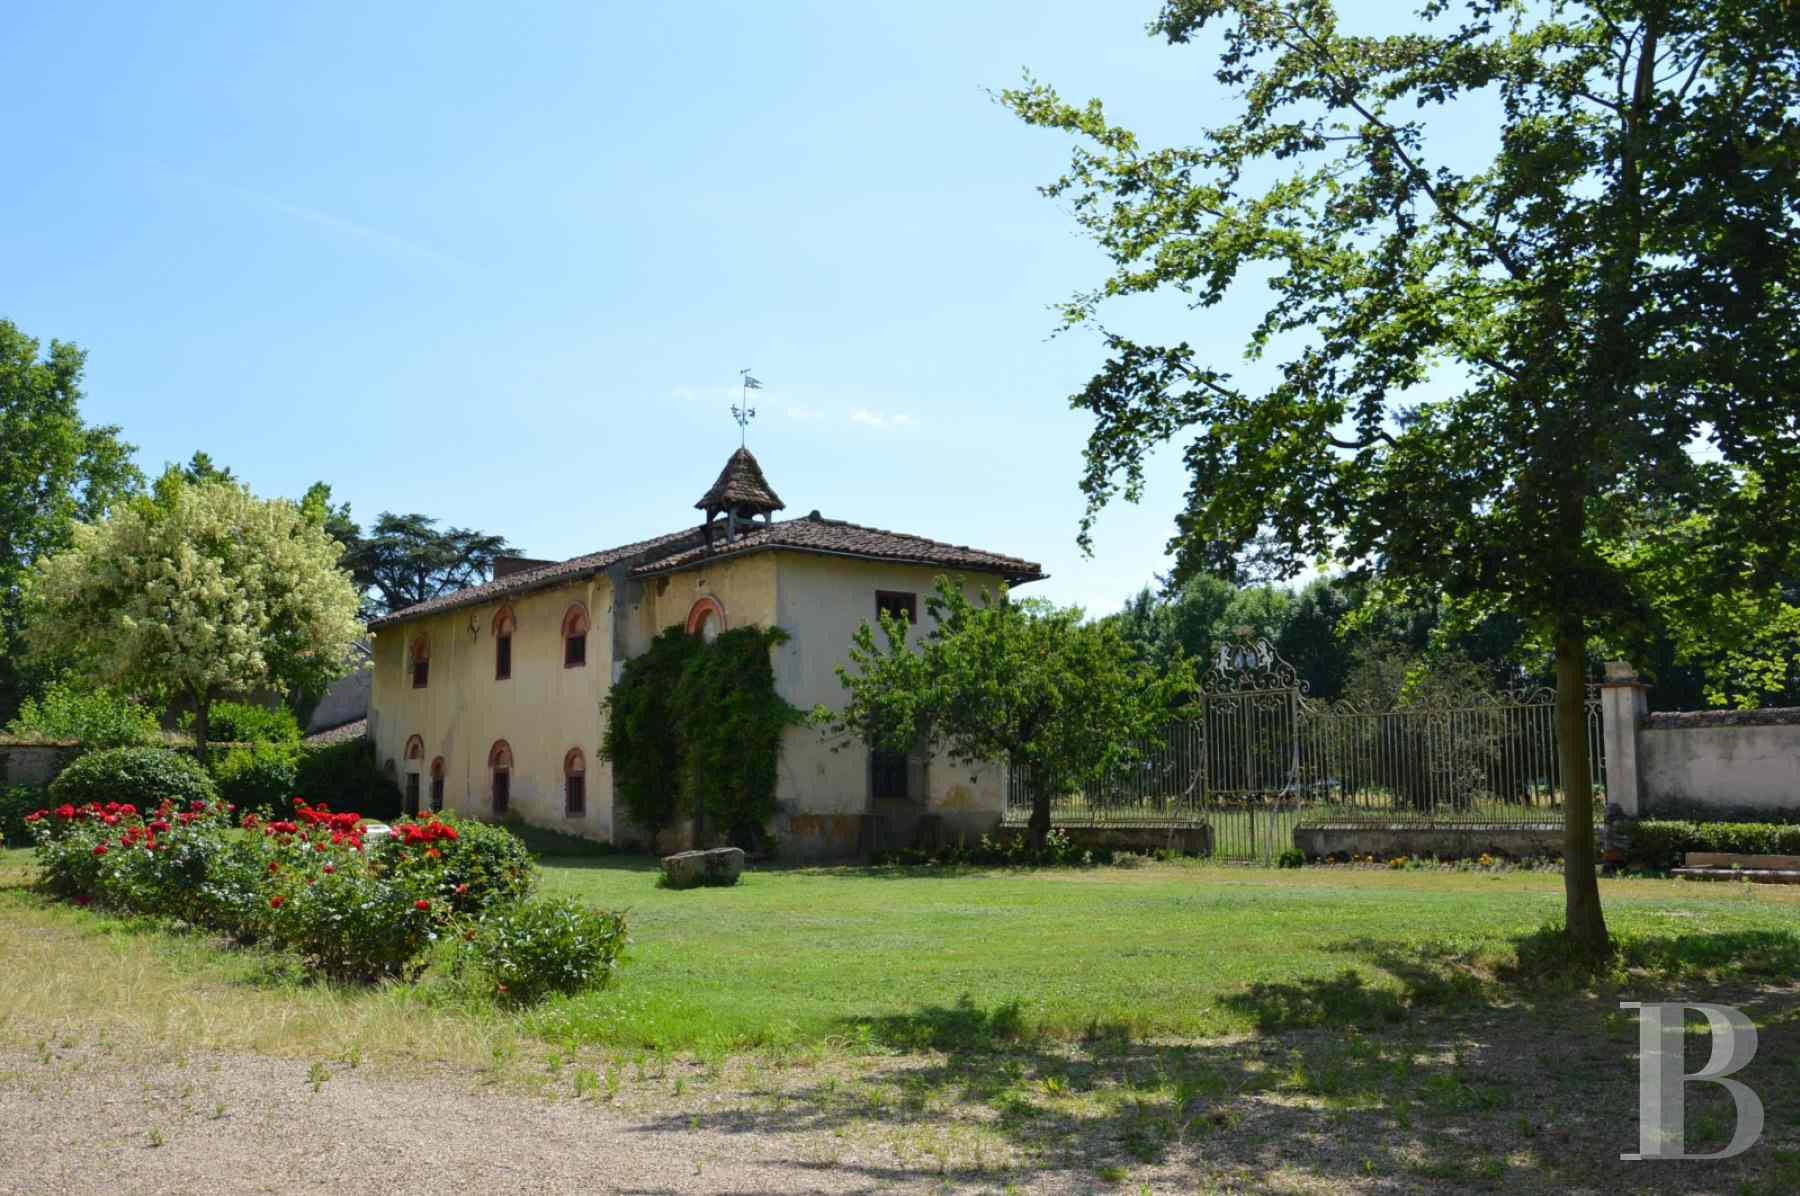 chateaux for sale France rhones alps liste chateau - 3 zoom